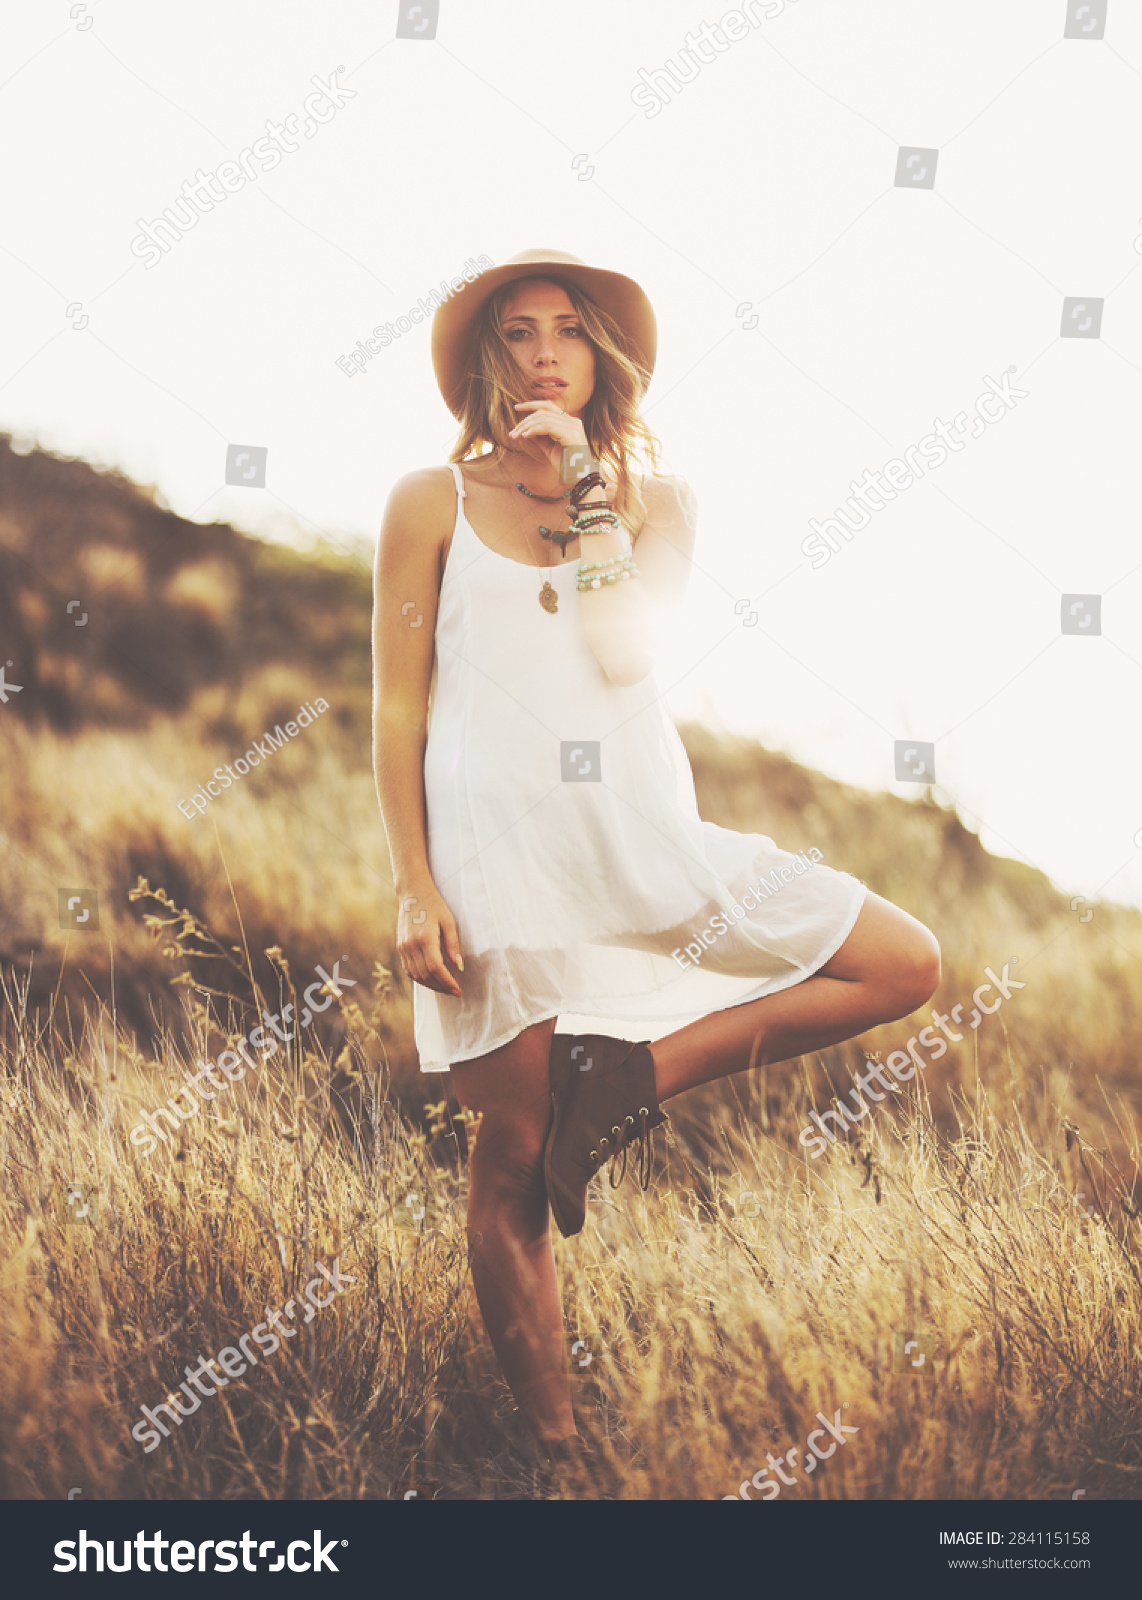 Fashion Lifestyle Fashion Portrait Of Beautiful Young Woman Outdoors Soft Warm Vintage Color